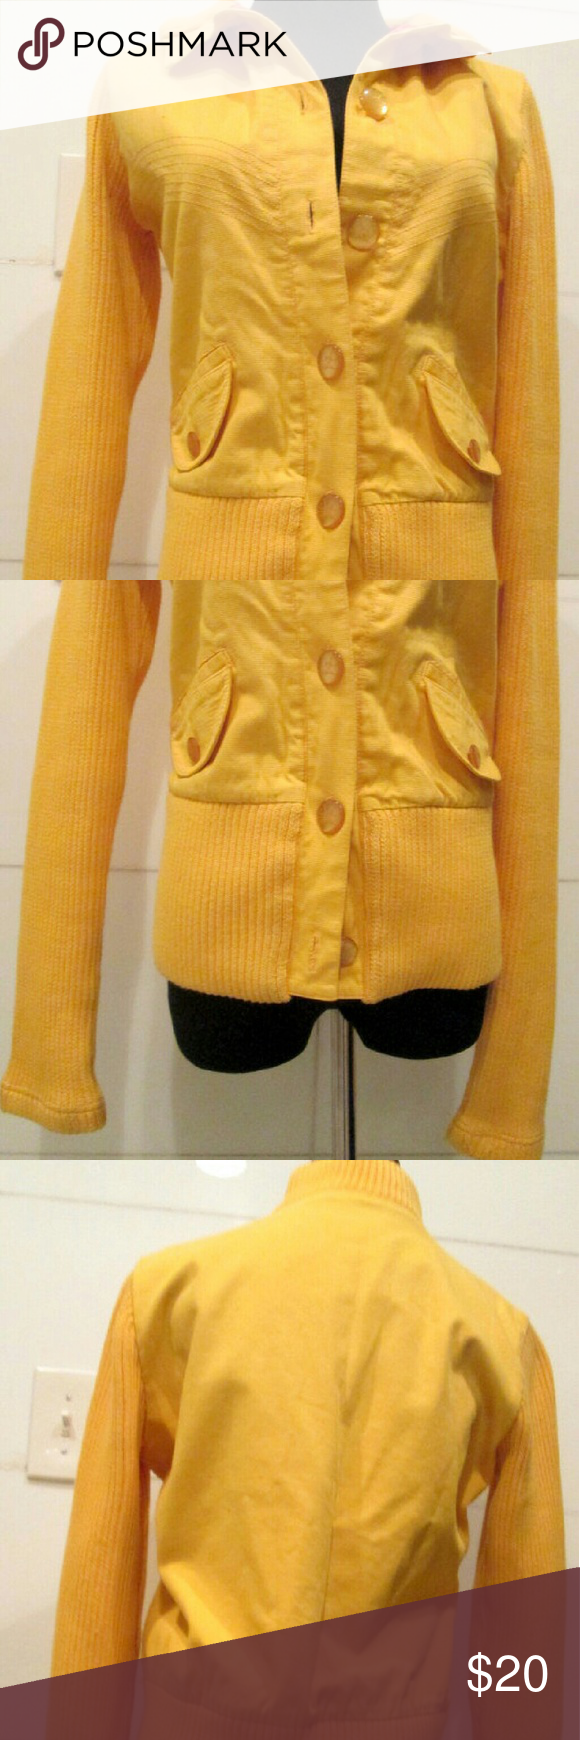 Vintage Preppy Yellow Ribbed Sweater Size M | Preppy sweater and ...